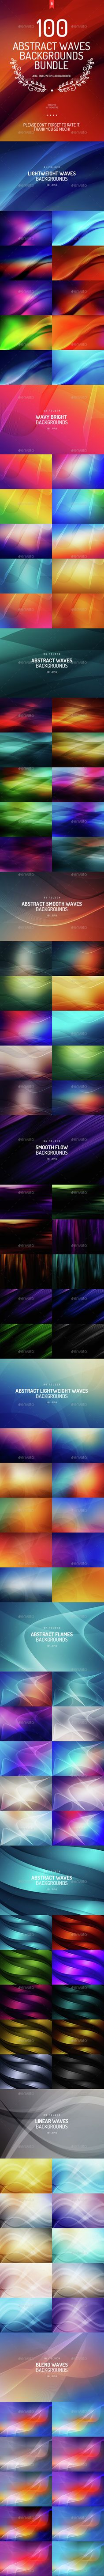 100 Abstract Waves Backgrounds Bundle. Download here: http://graphicriver.net/item/100-abstract-waves-backgrounds-bundle/15314659?ref=ksioks